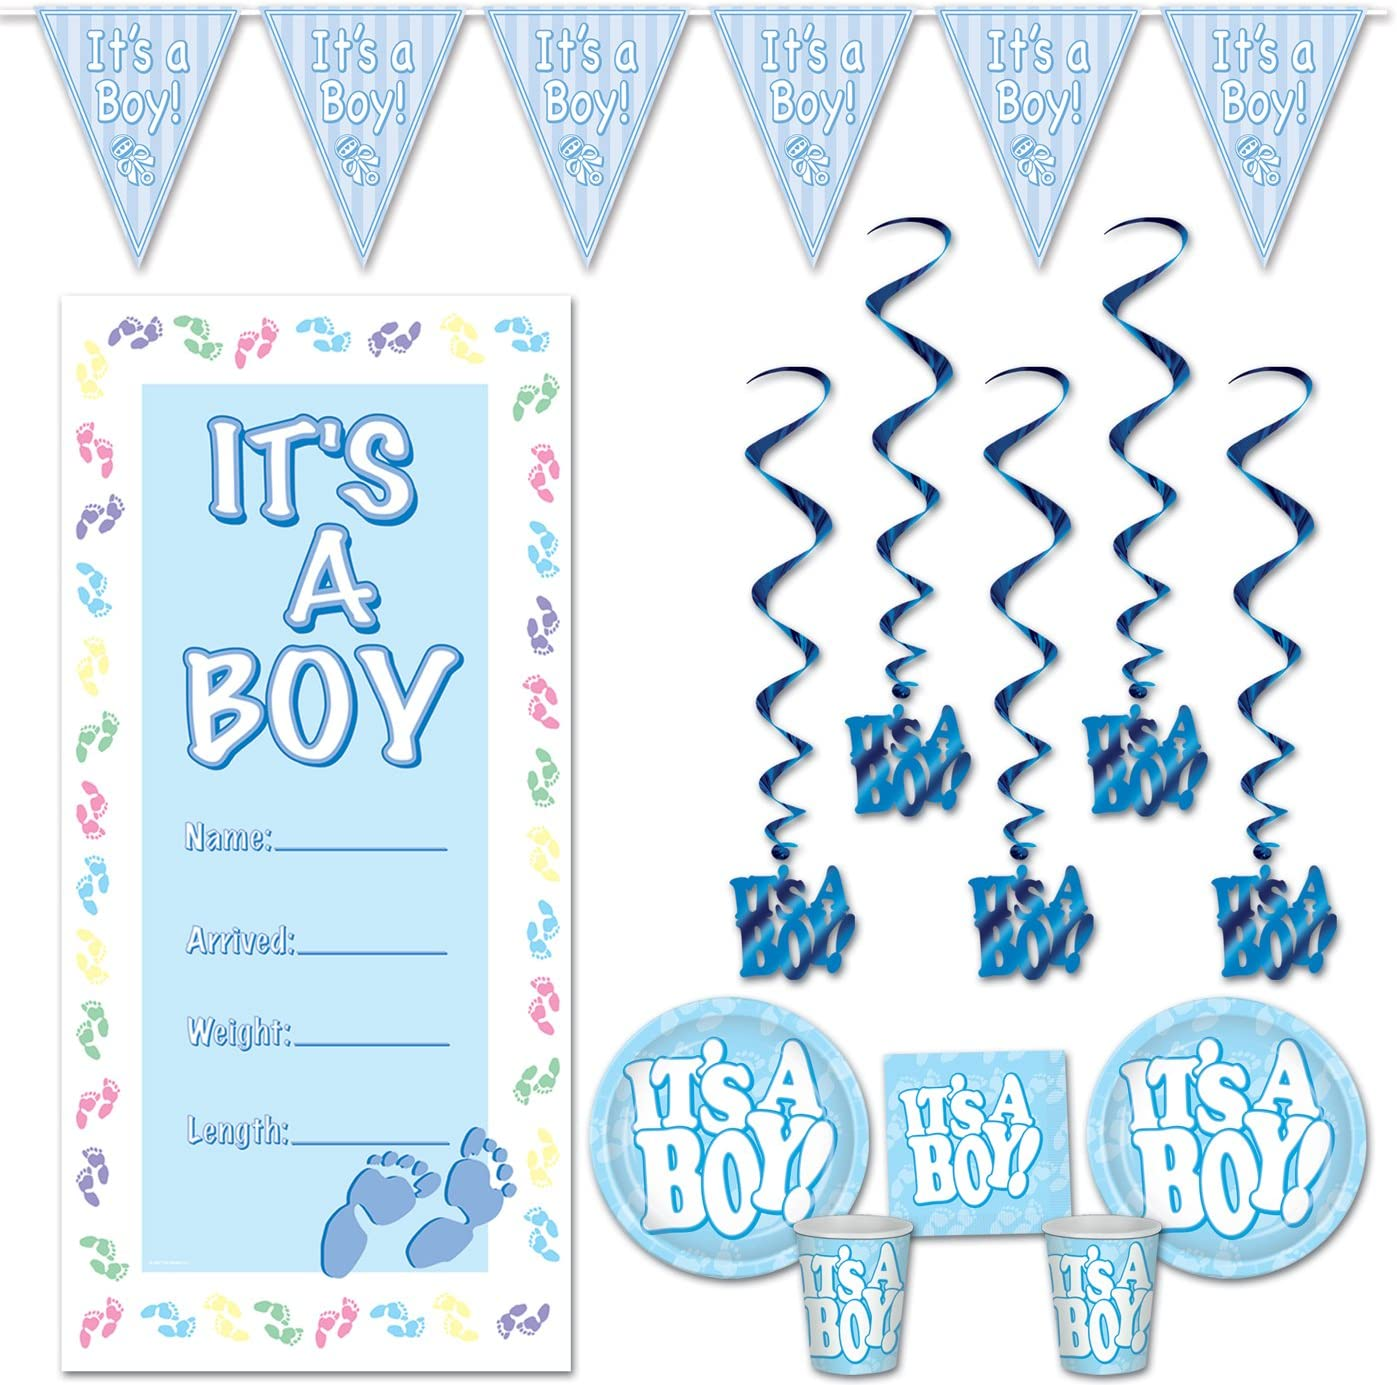 It's A Boy! Baby Shower Boy Decorations Blue Party Bundle – Includes 16 Plates, 16 Luncheon Napkins, 16 Beverage Cups, 1 Pennant Banner, 1 Door Cover and 5 Whirls